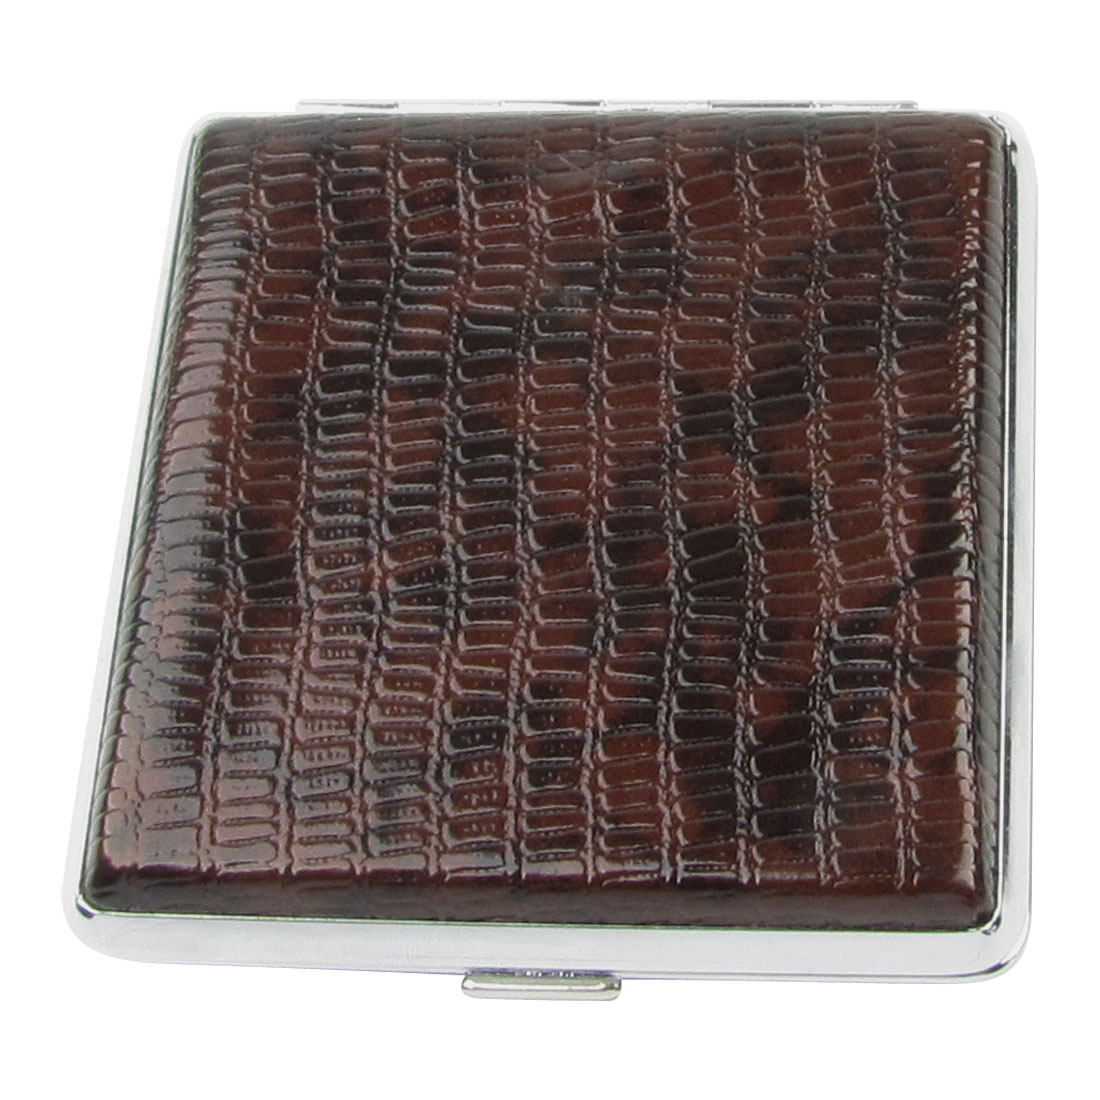 Man Stretchy Strap Fixed Side Spring Loaded Cigarettes Case Holder Dark Brown